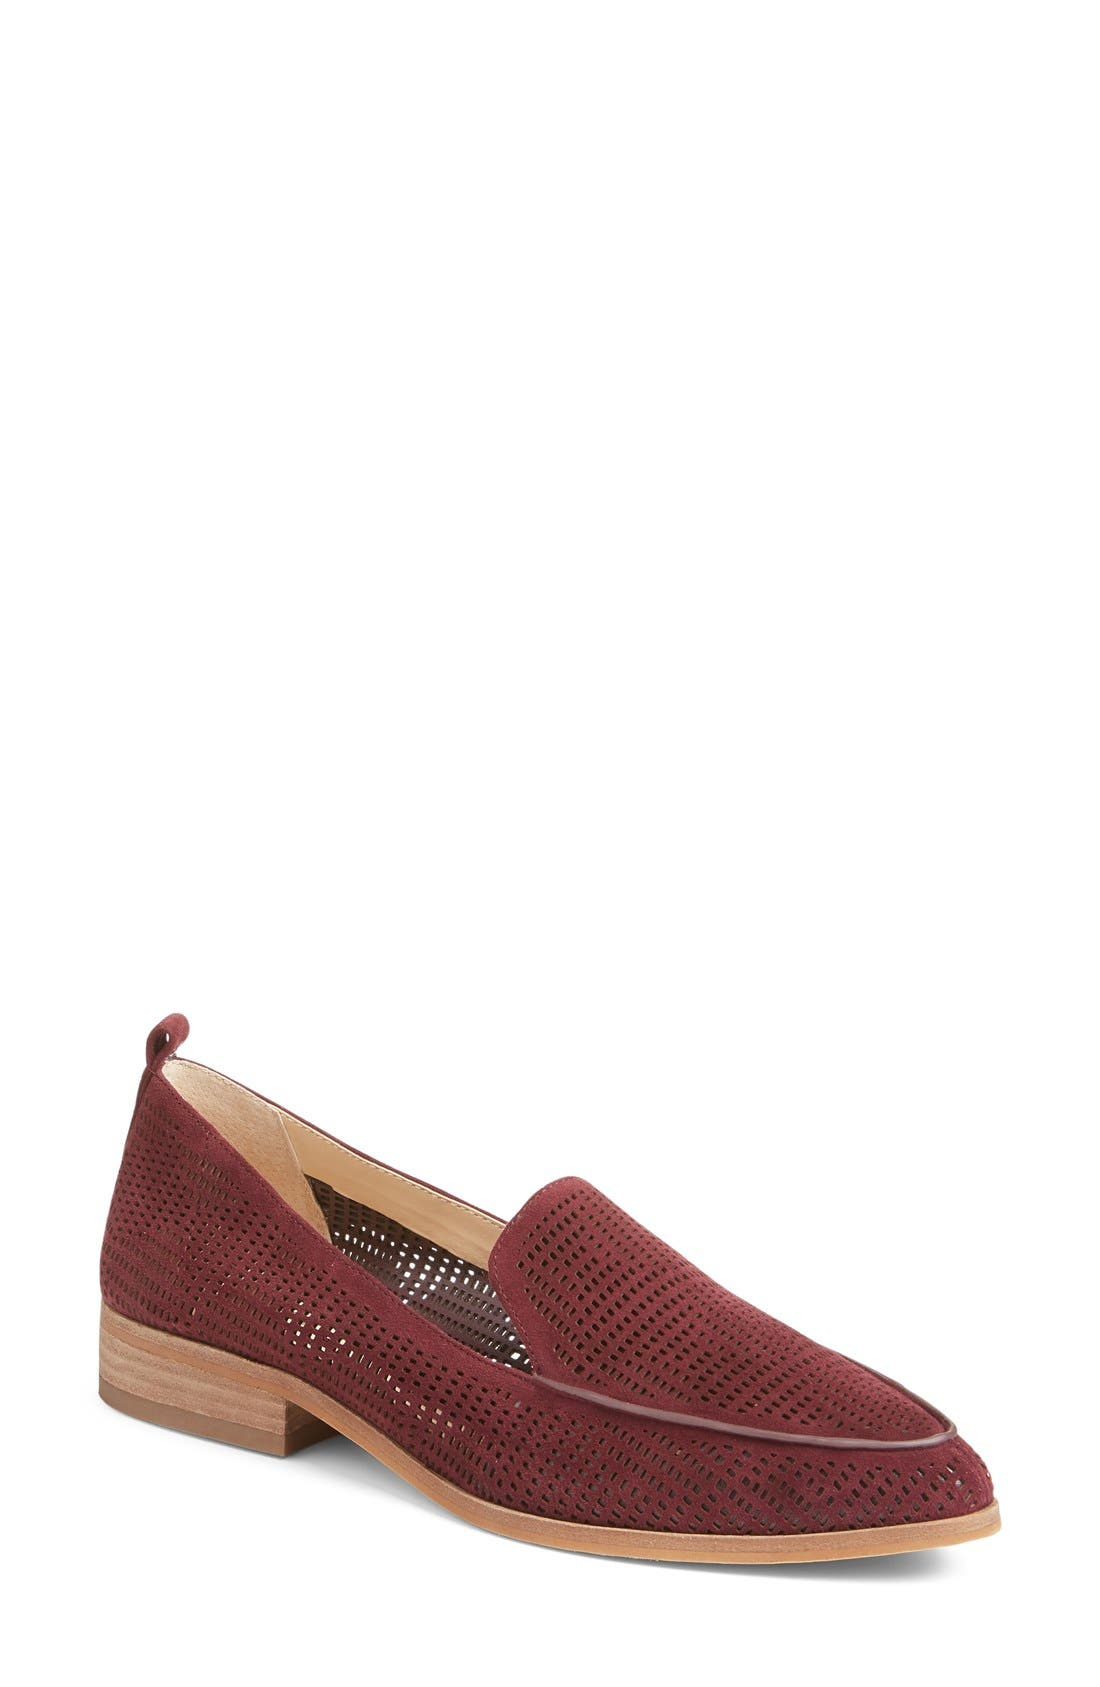 Main Image - Vince Camuto 'Kade' Cutout Loafer (Women) (Nordstrom Exclusive)